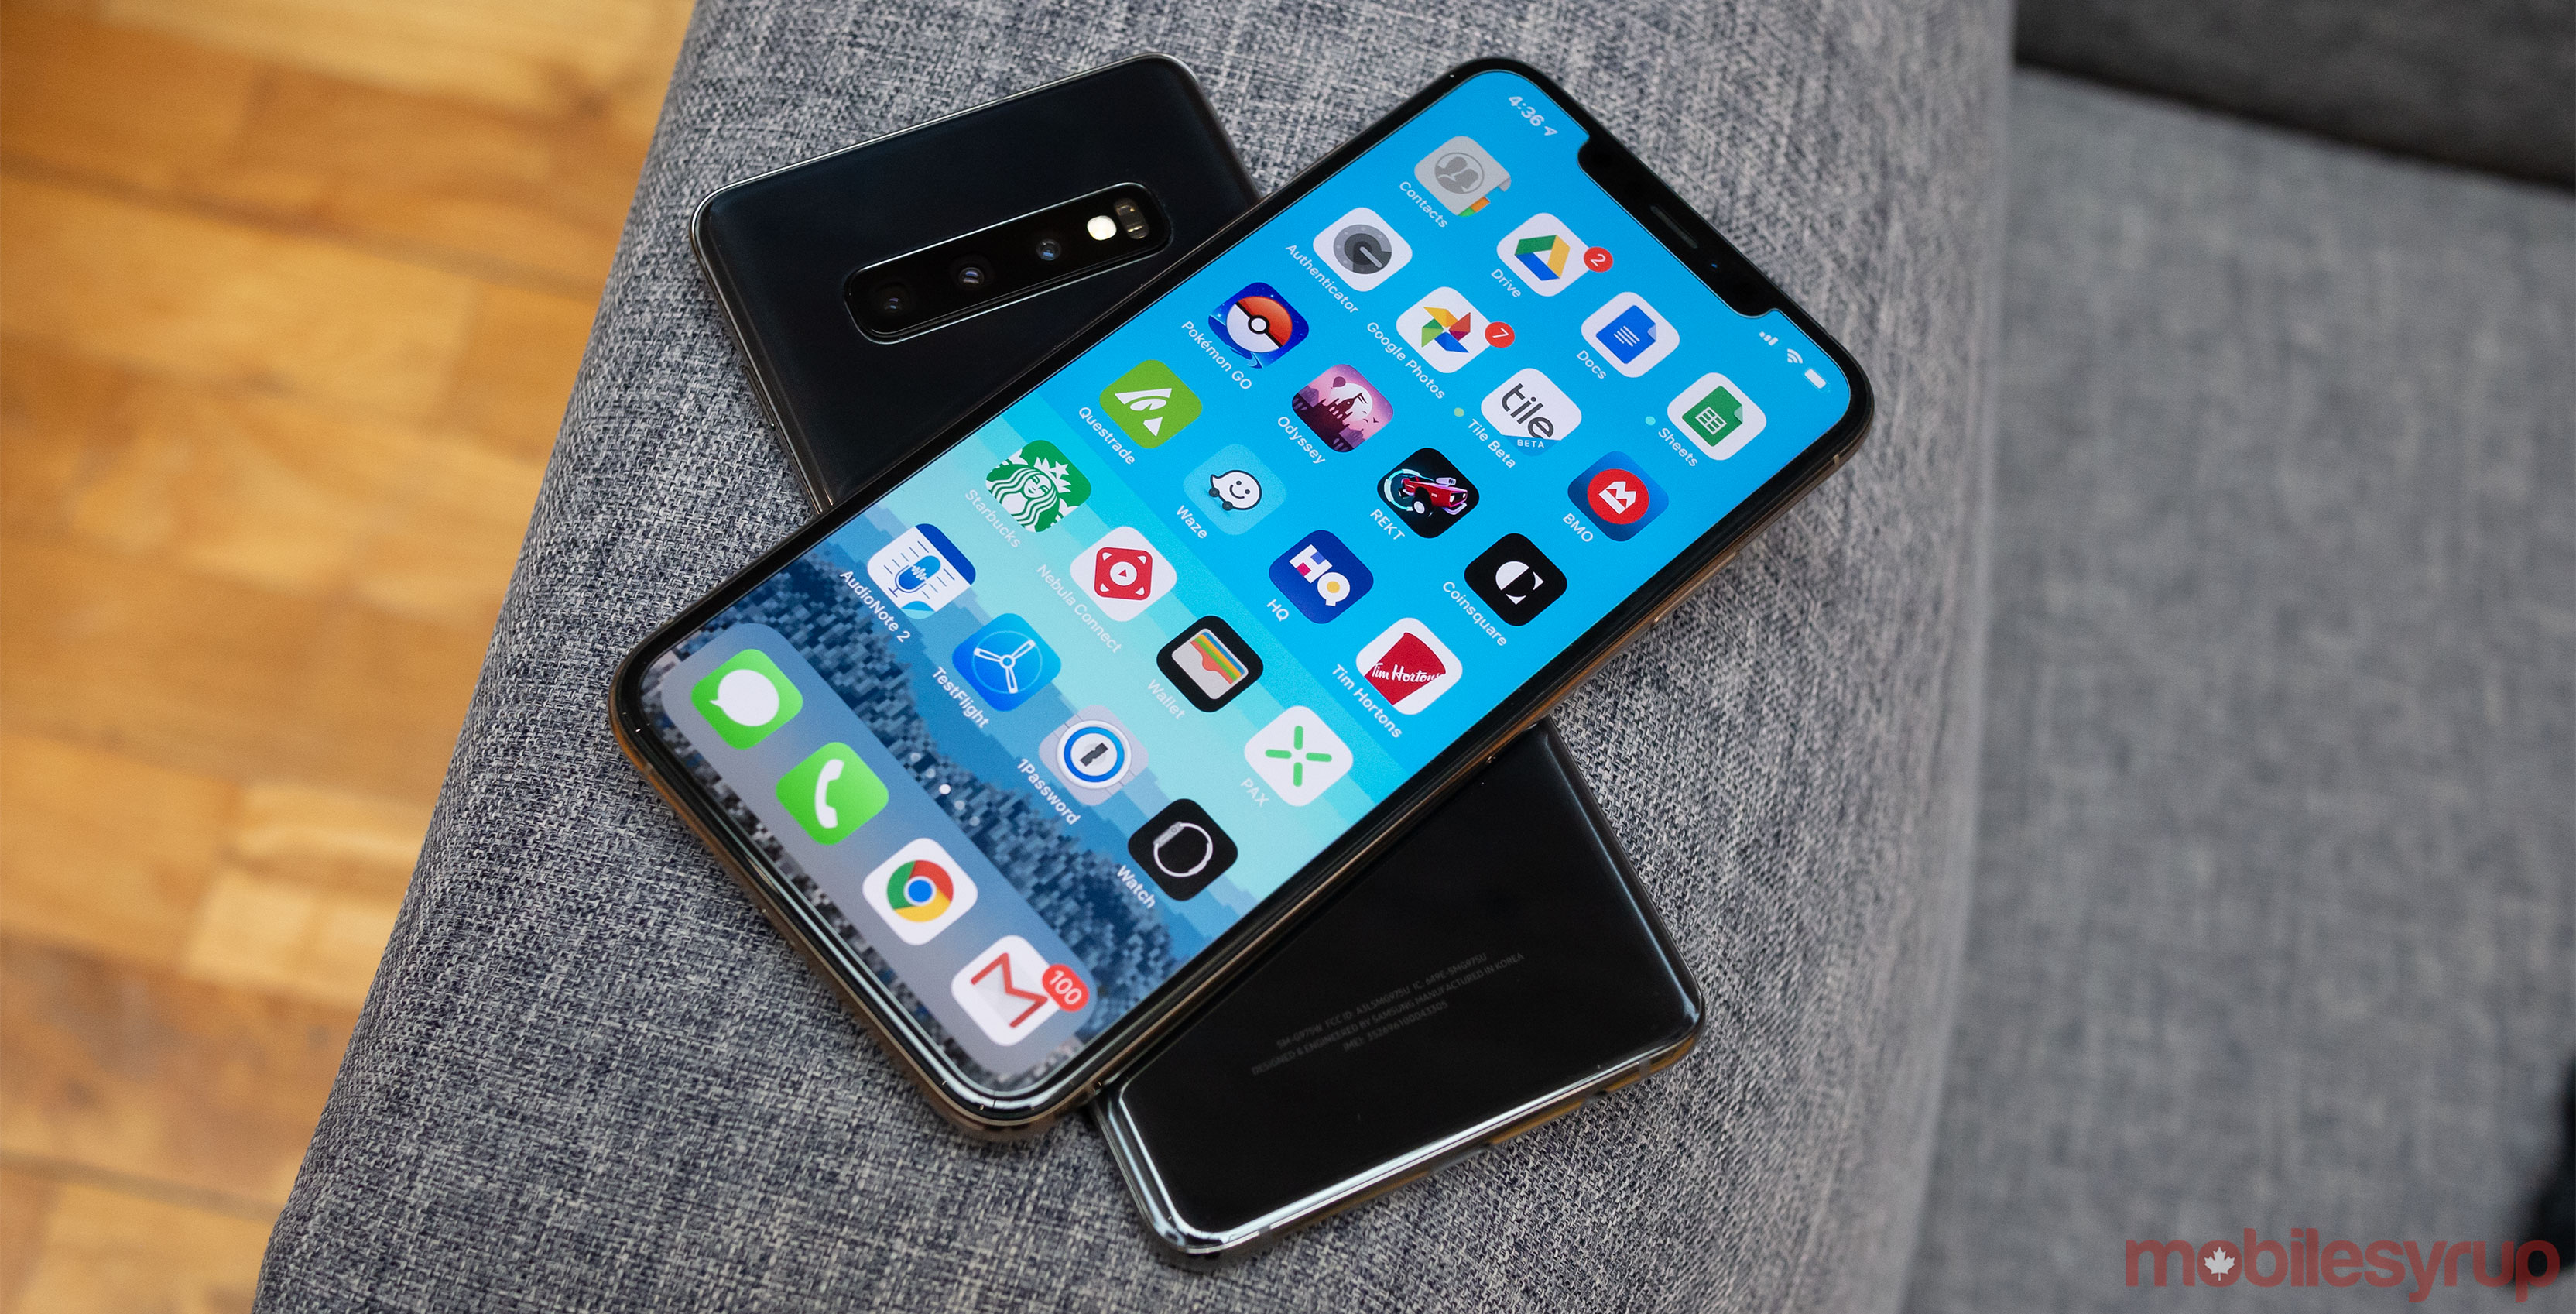 You haven't lived until you've used Samsung's S10+ to charge Apple's